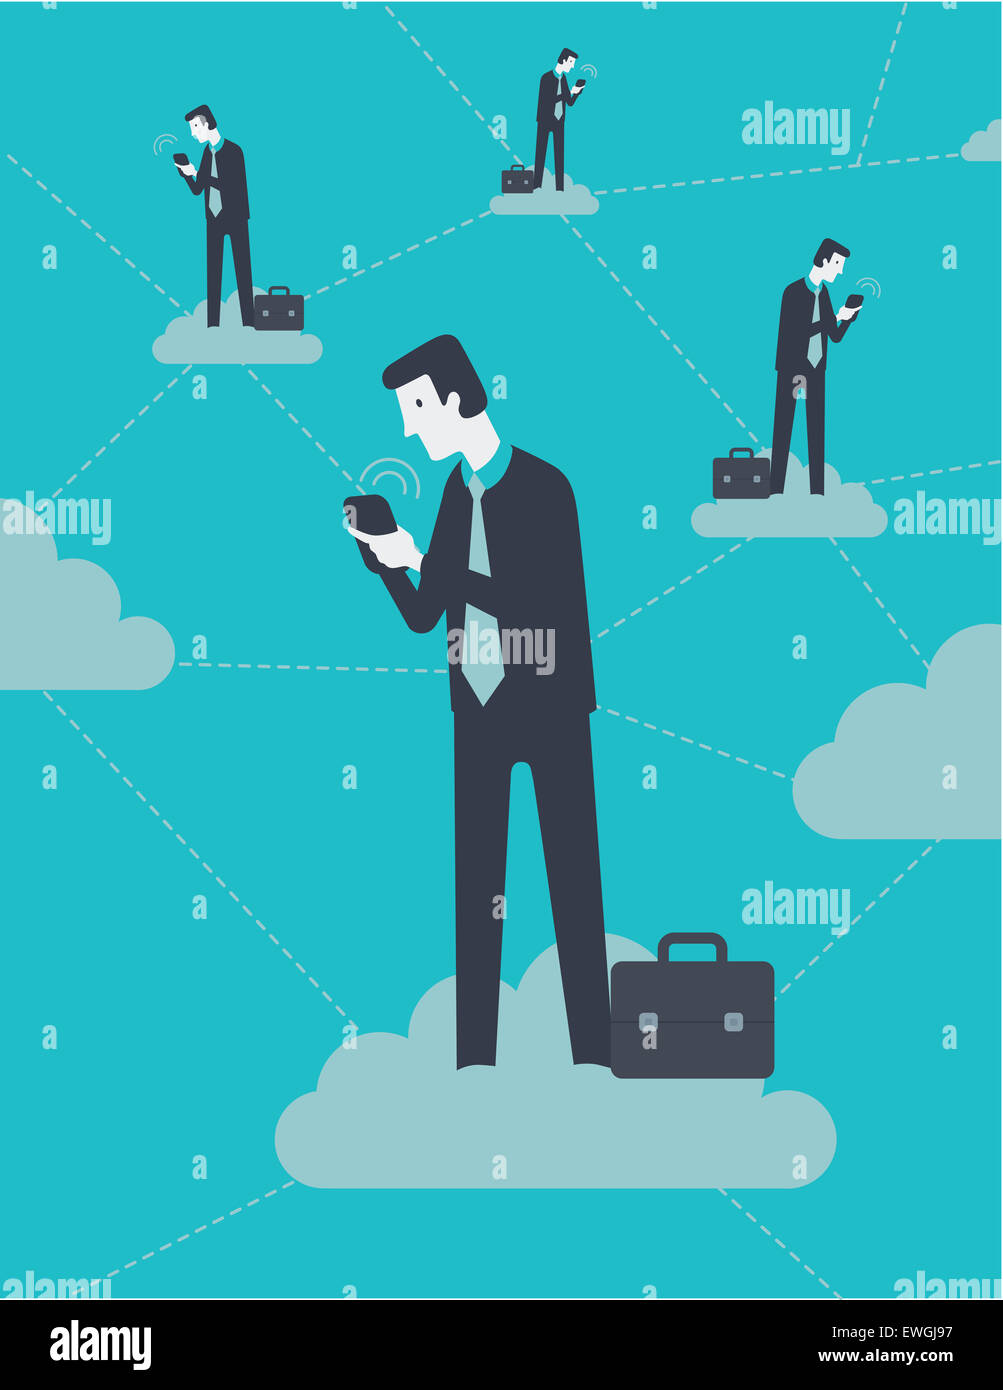 Businessmen working on mobile phone connected together through cloud computing - Stock Image